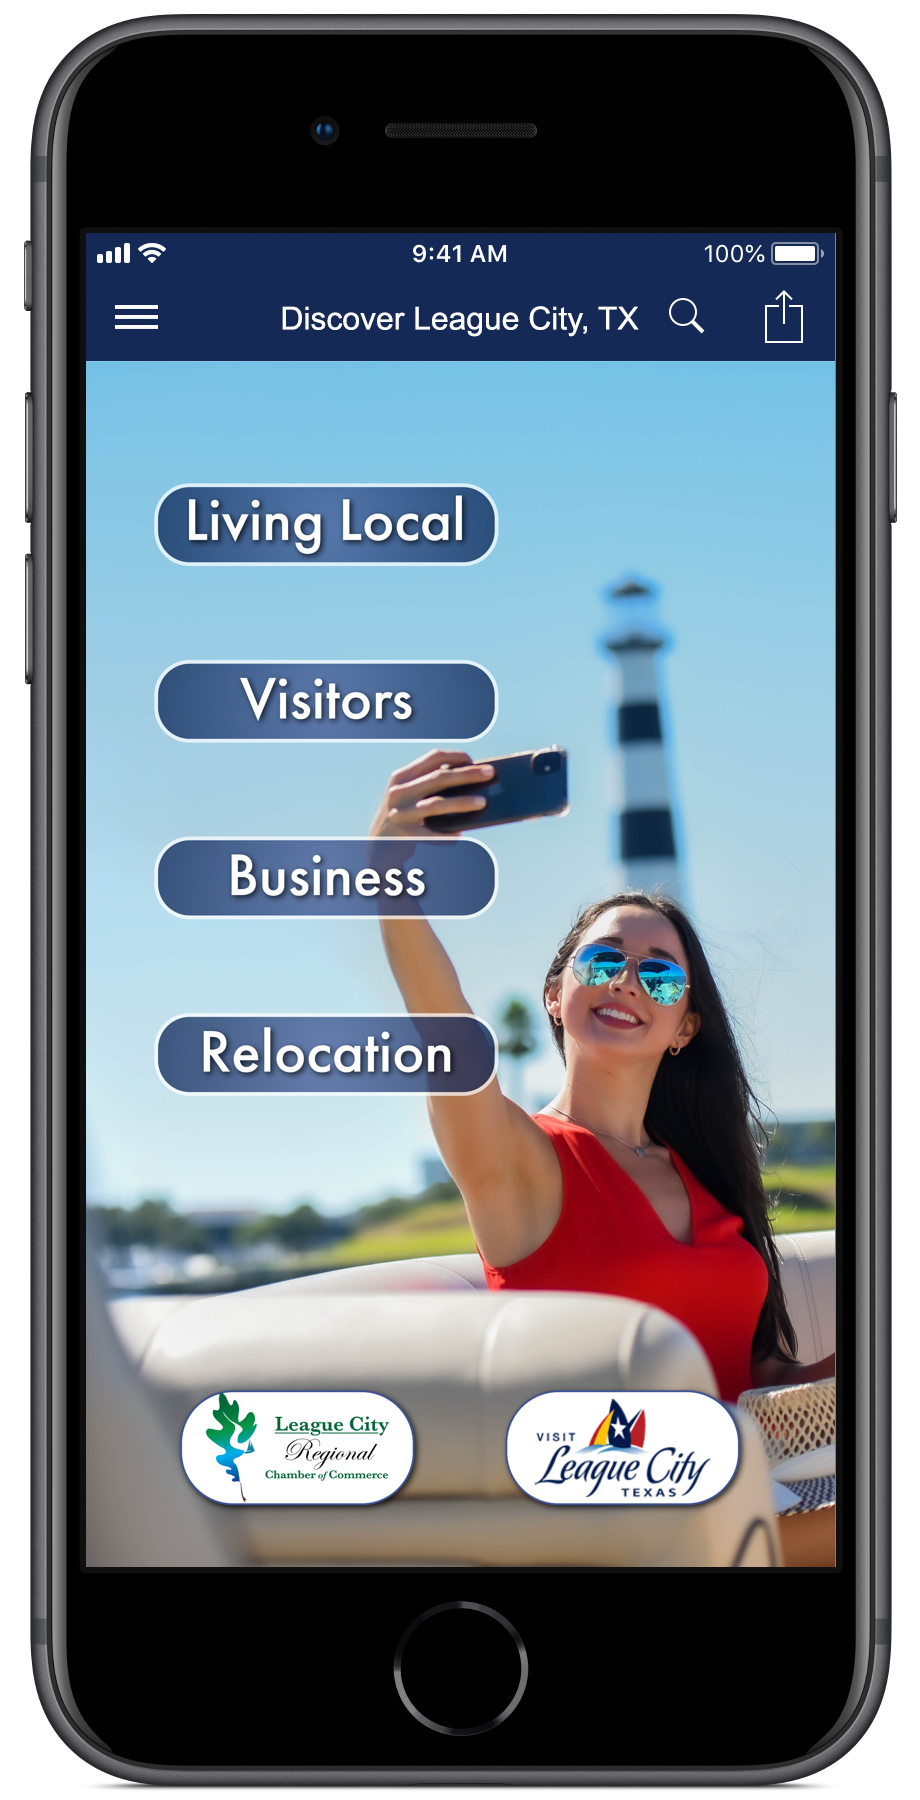 ANNOUNCEMENT: Get in the big leagues with the League City App!